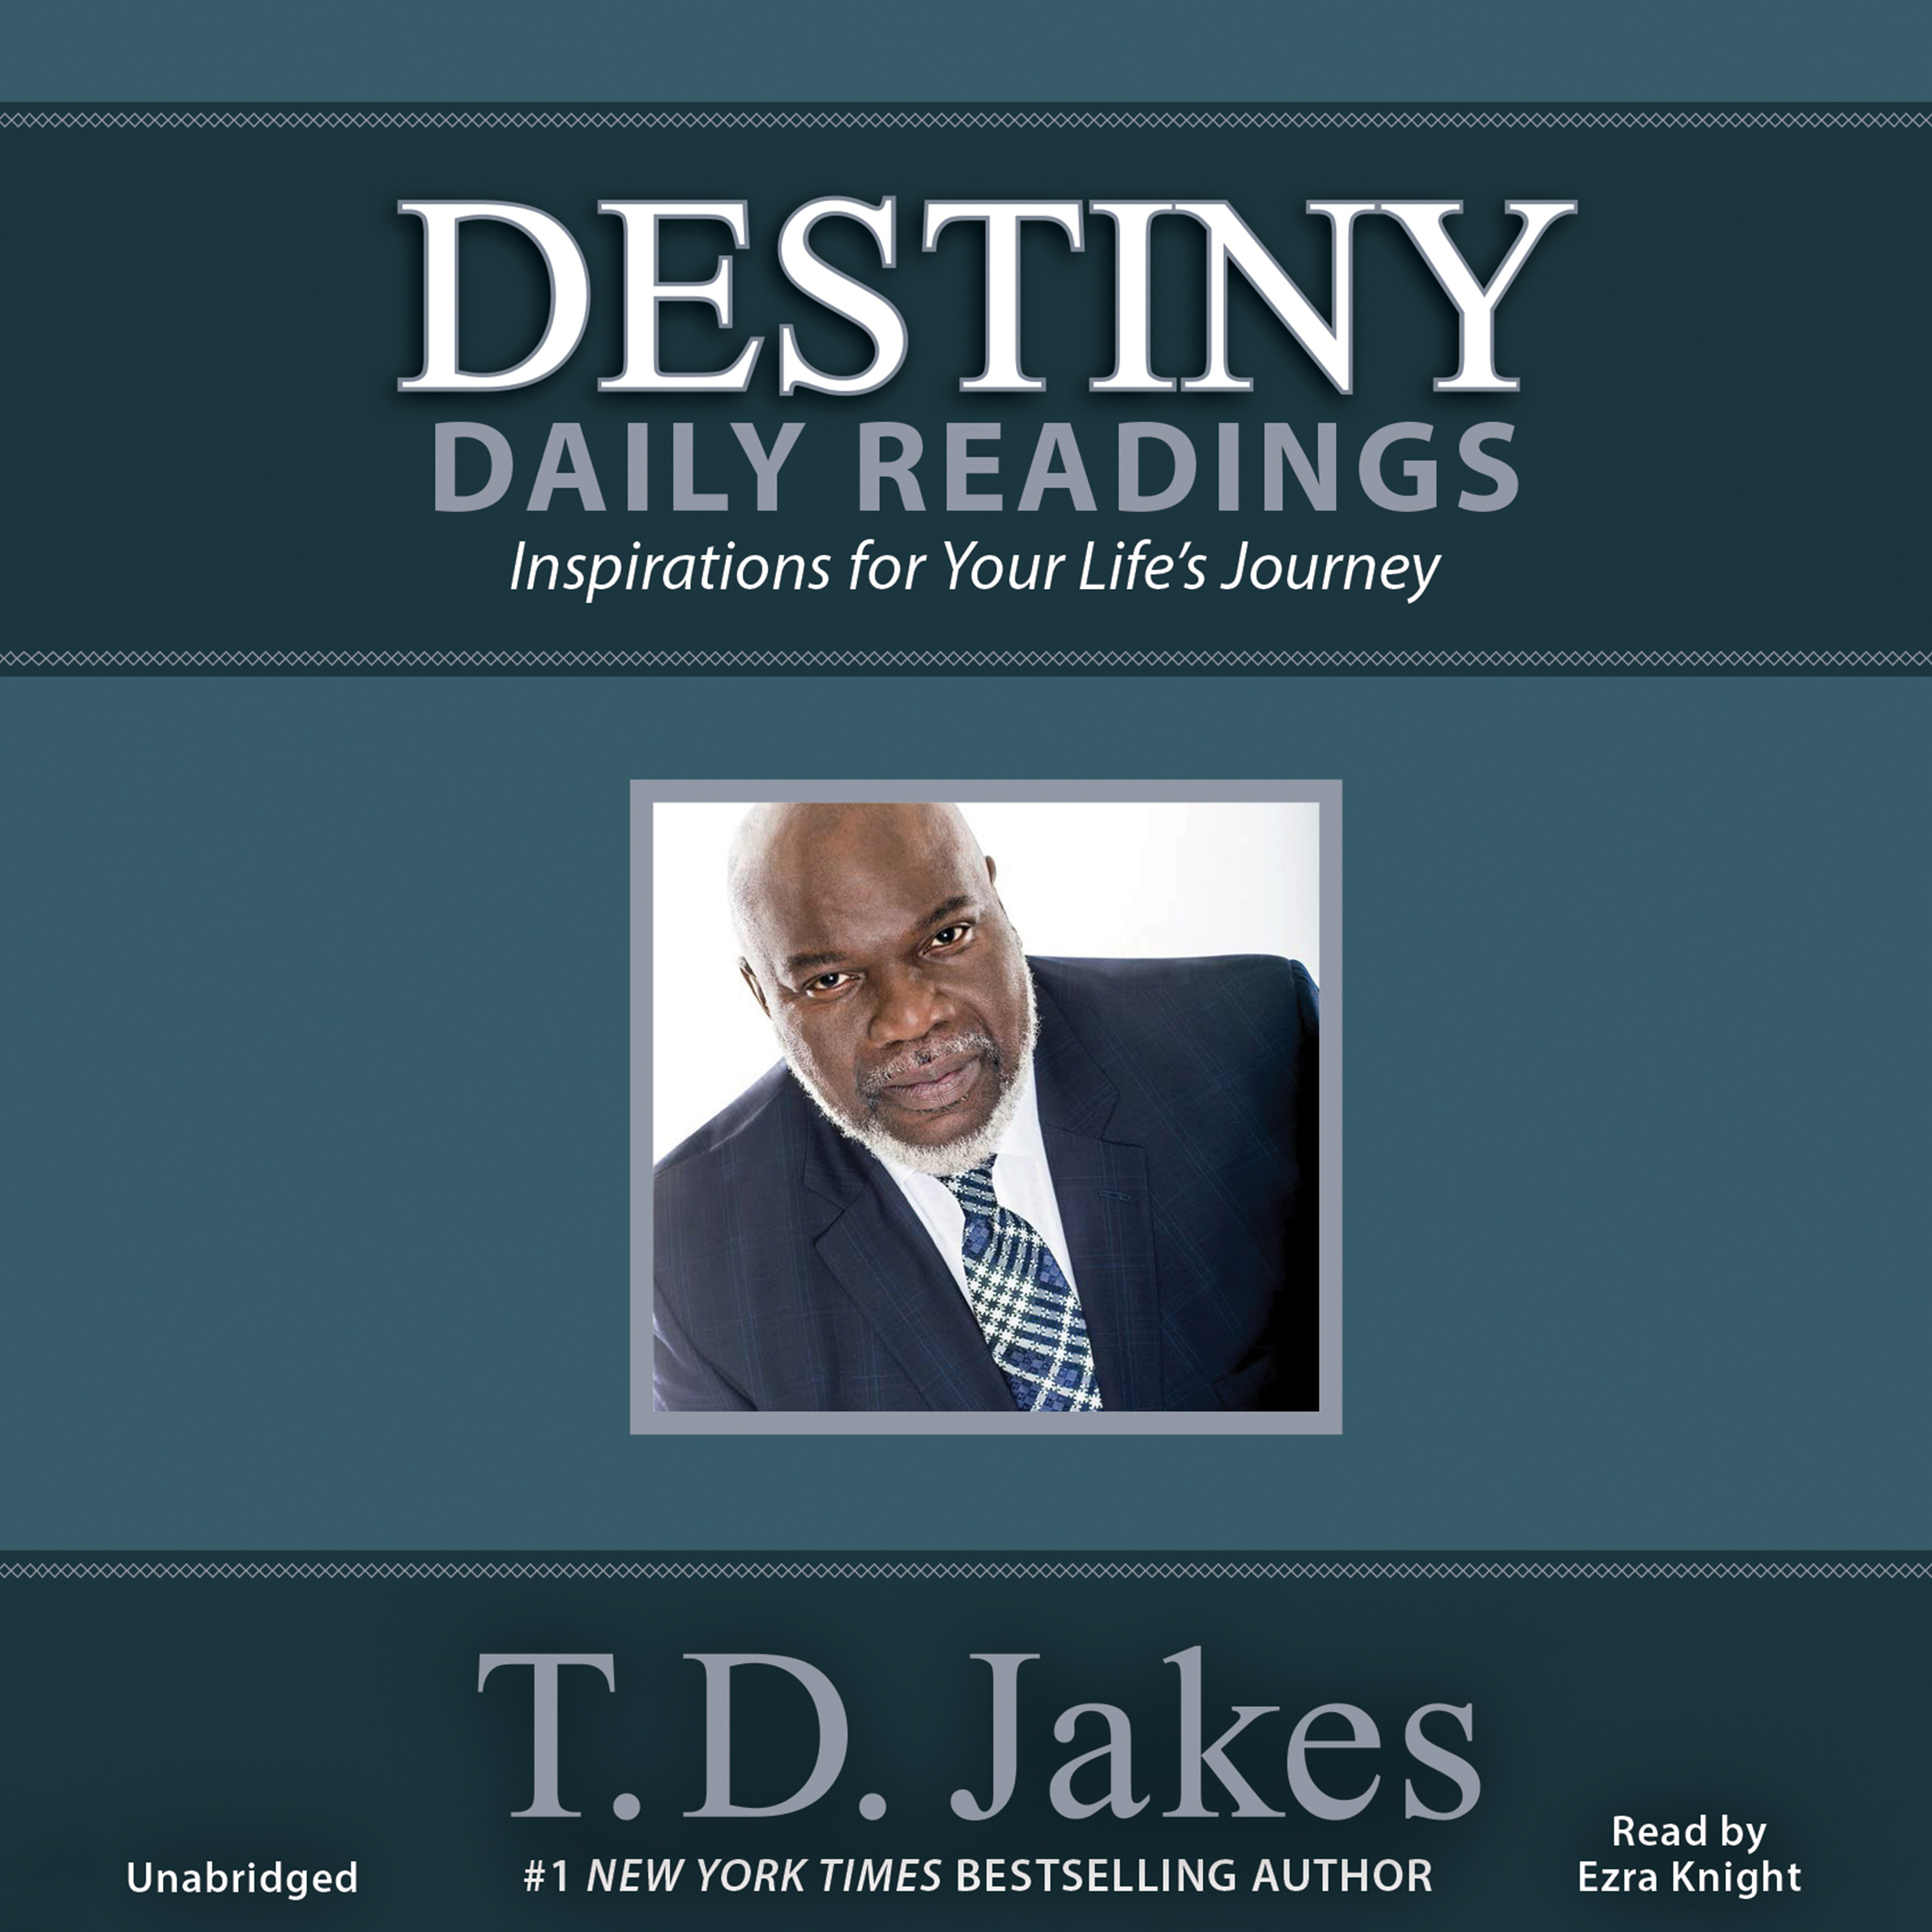 destiny daily readings audiobook by t d jakes